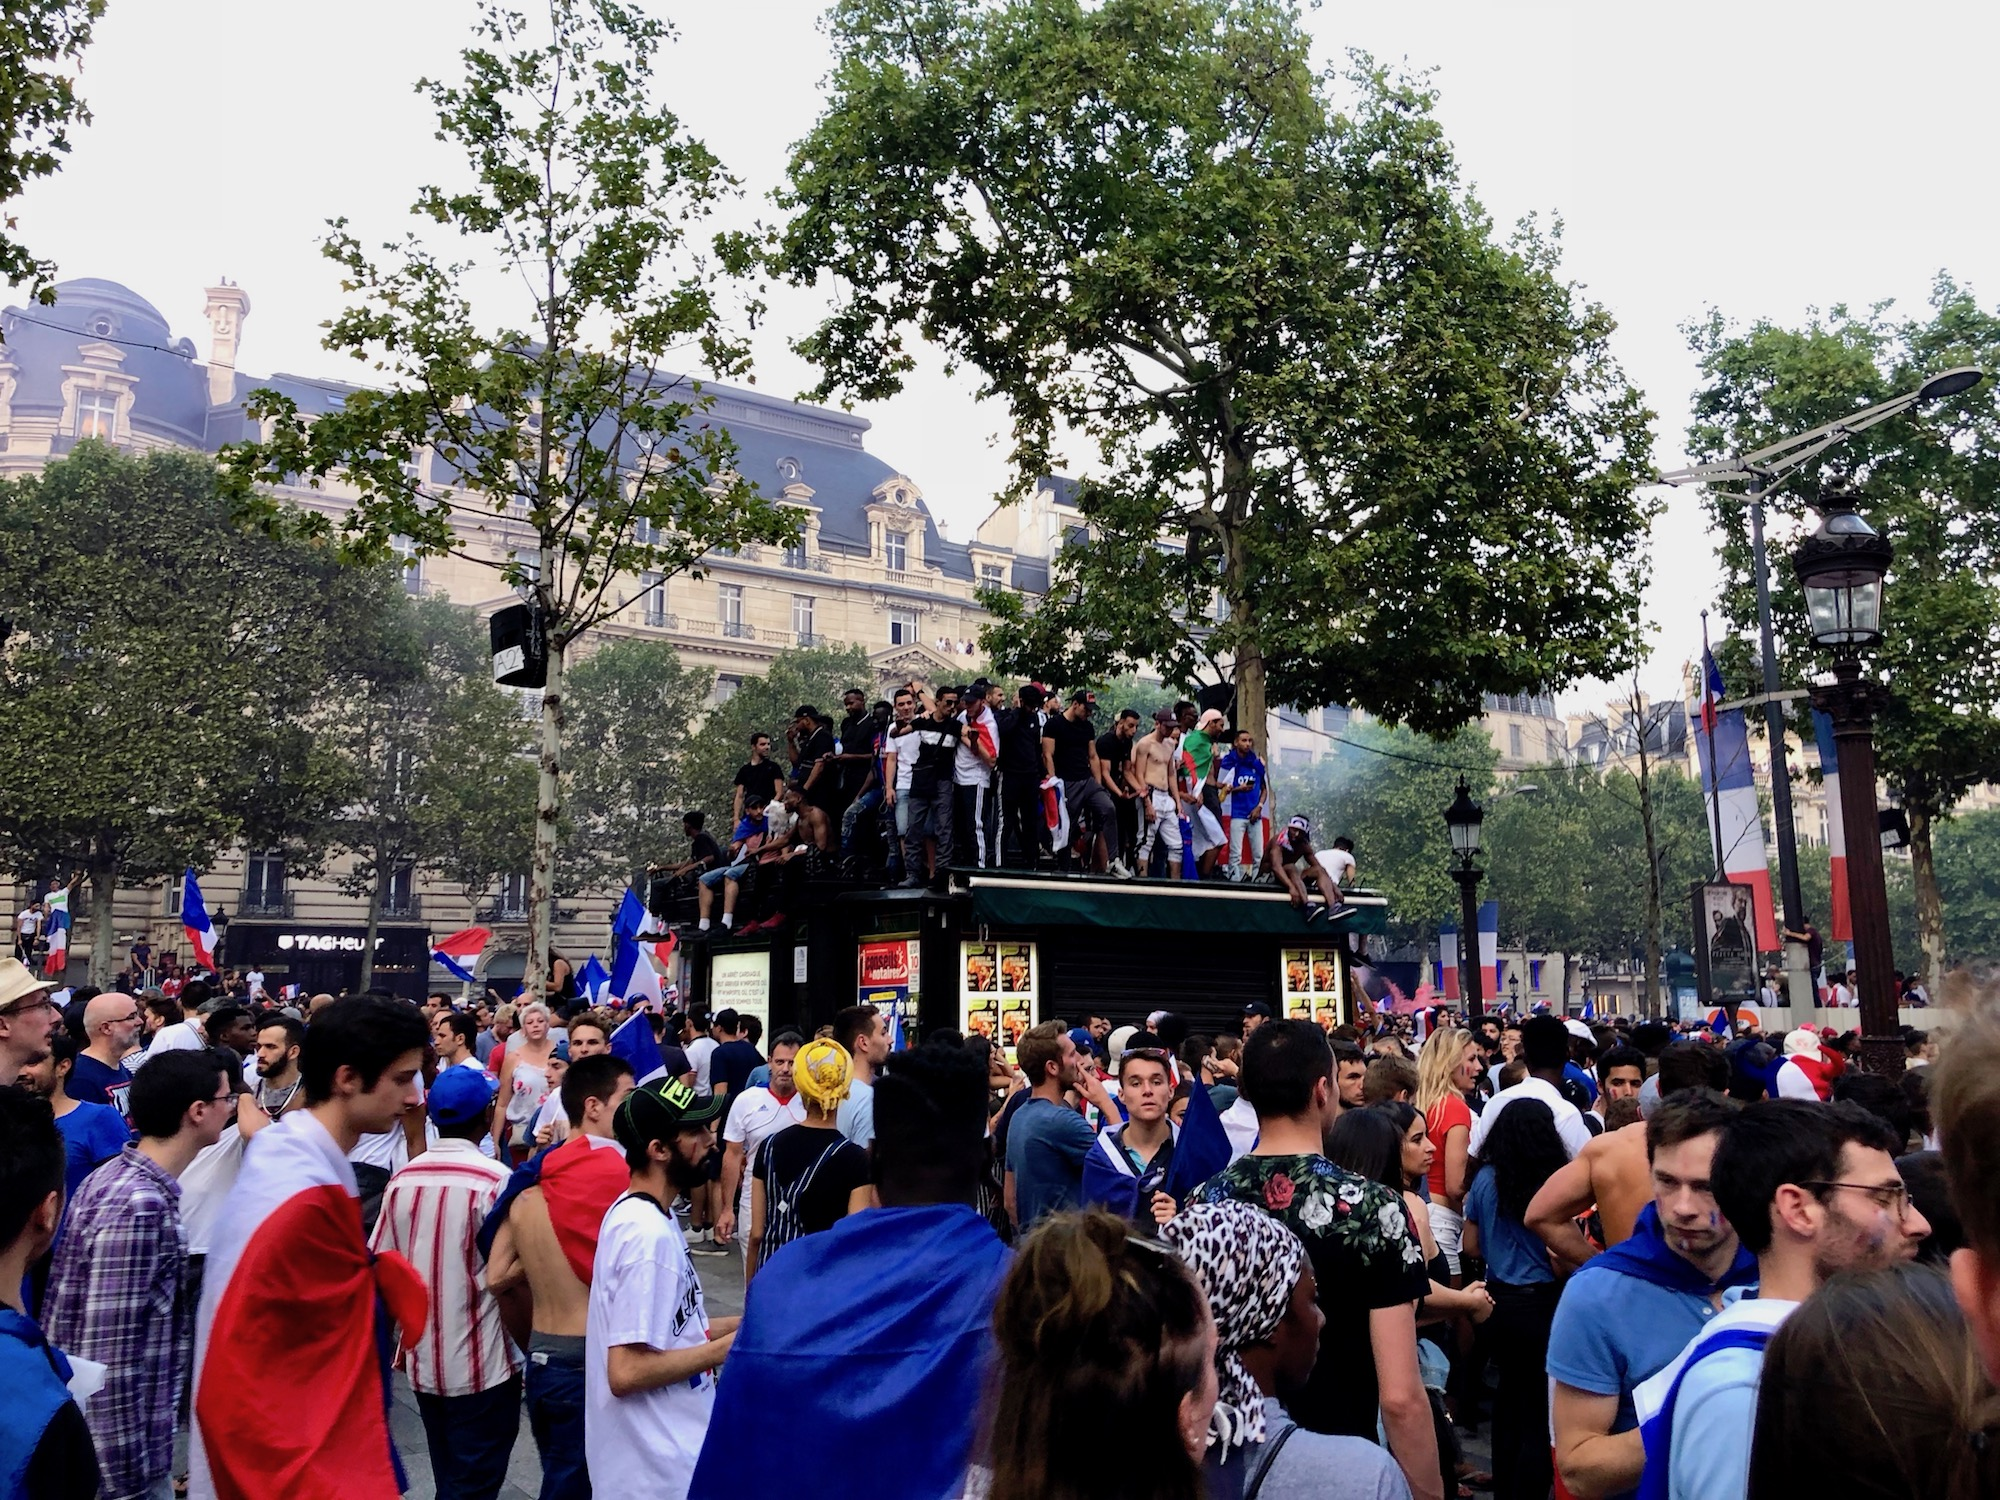 Crowds gathered all over Paris with French flags, to celebrate France winning the football world cup 2018.